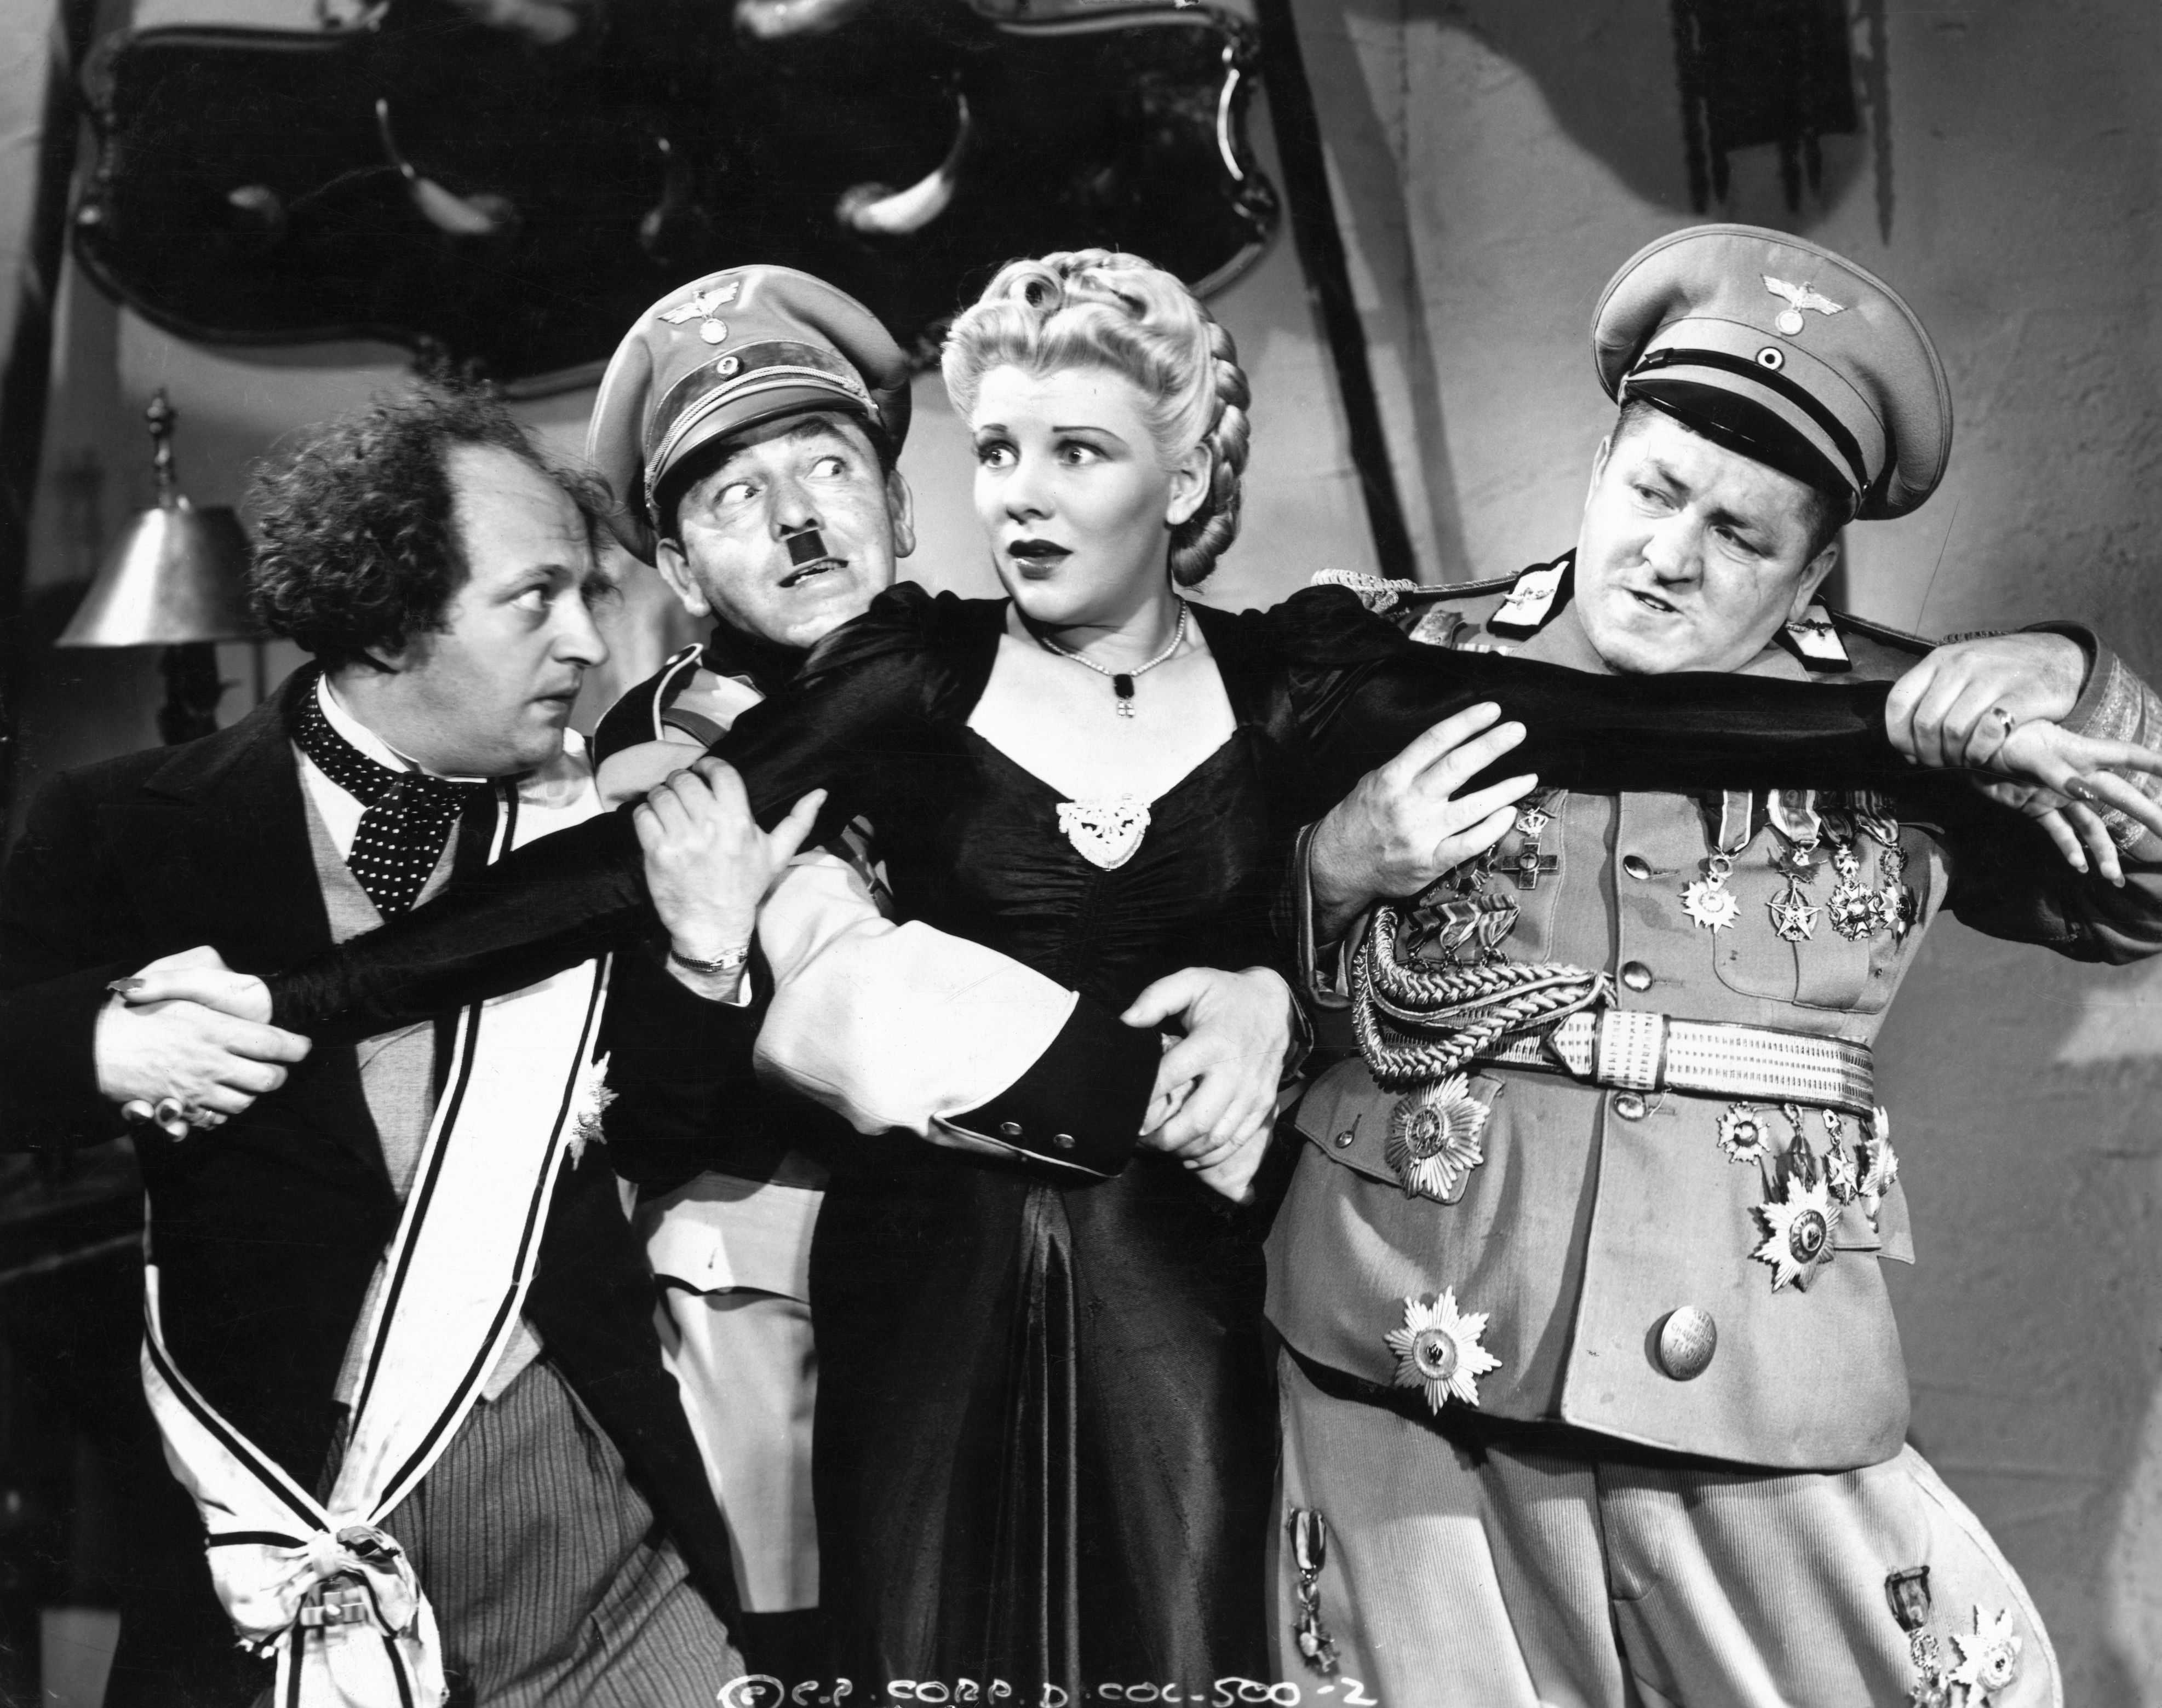 Three Stooges Scene with Actress